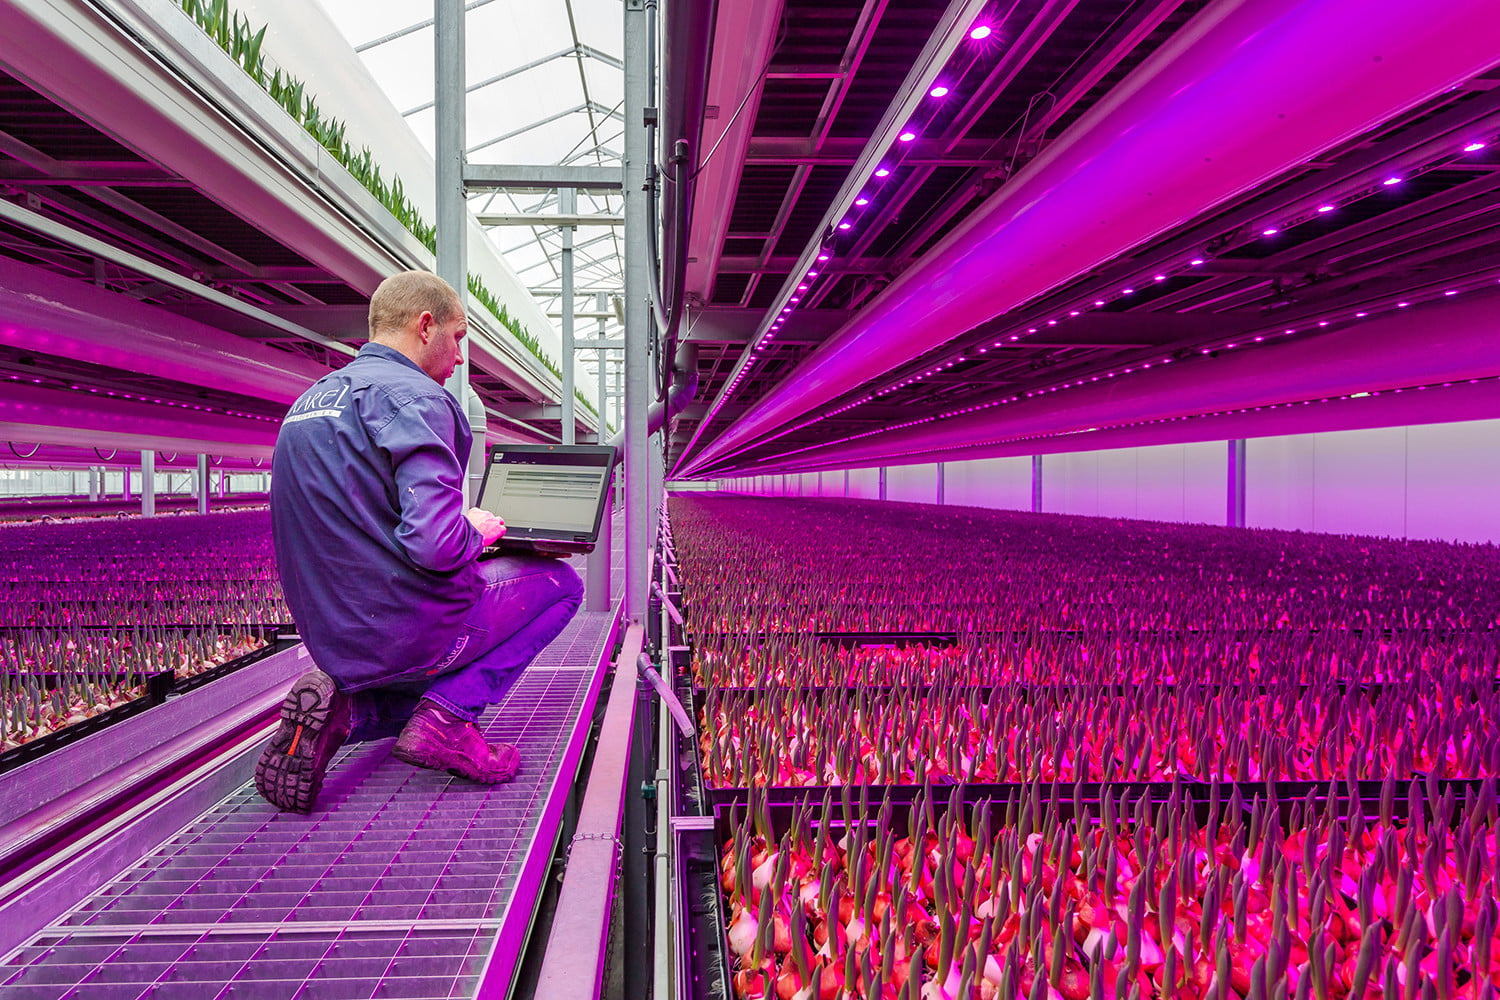 Will vertical farming continue to grow, or has it hit the